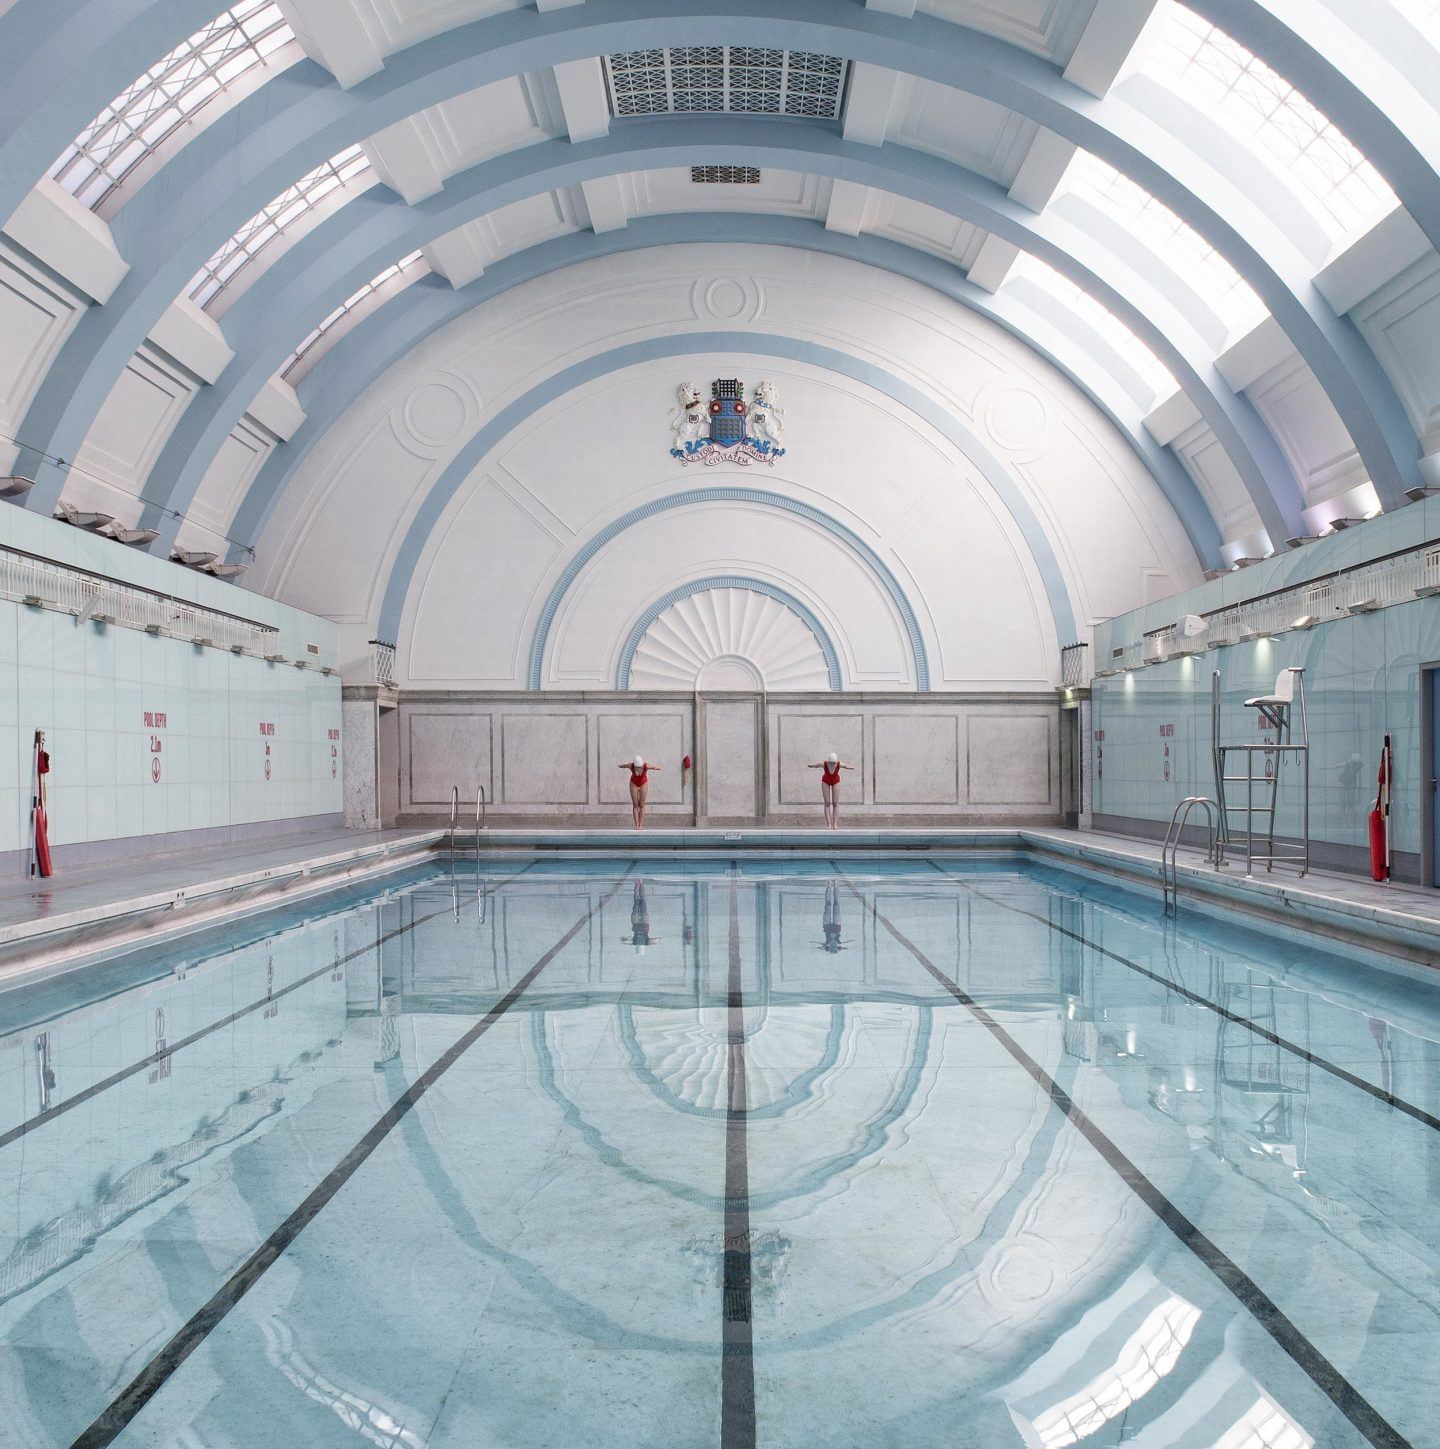 Soo Burnell's Serene Series Of Swimming Pools Is Inspired By Wes Anderson's Aesthetic - IGNANT